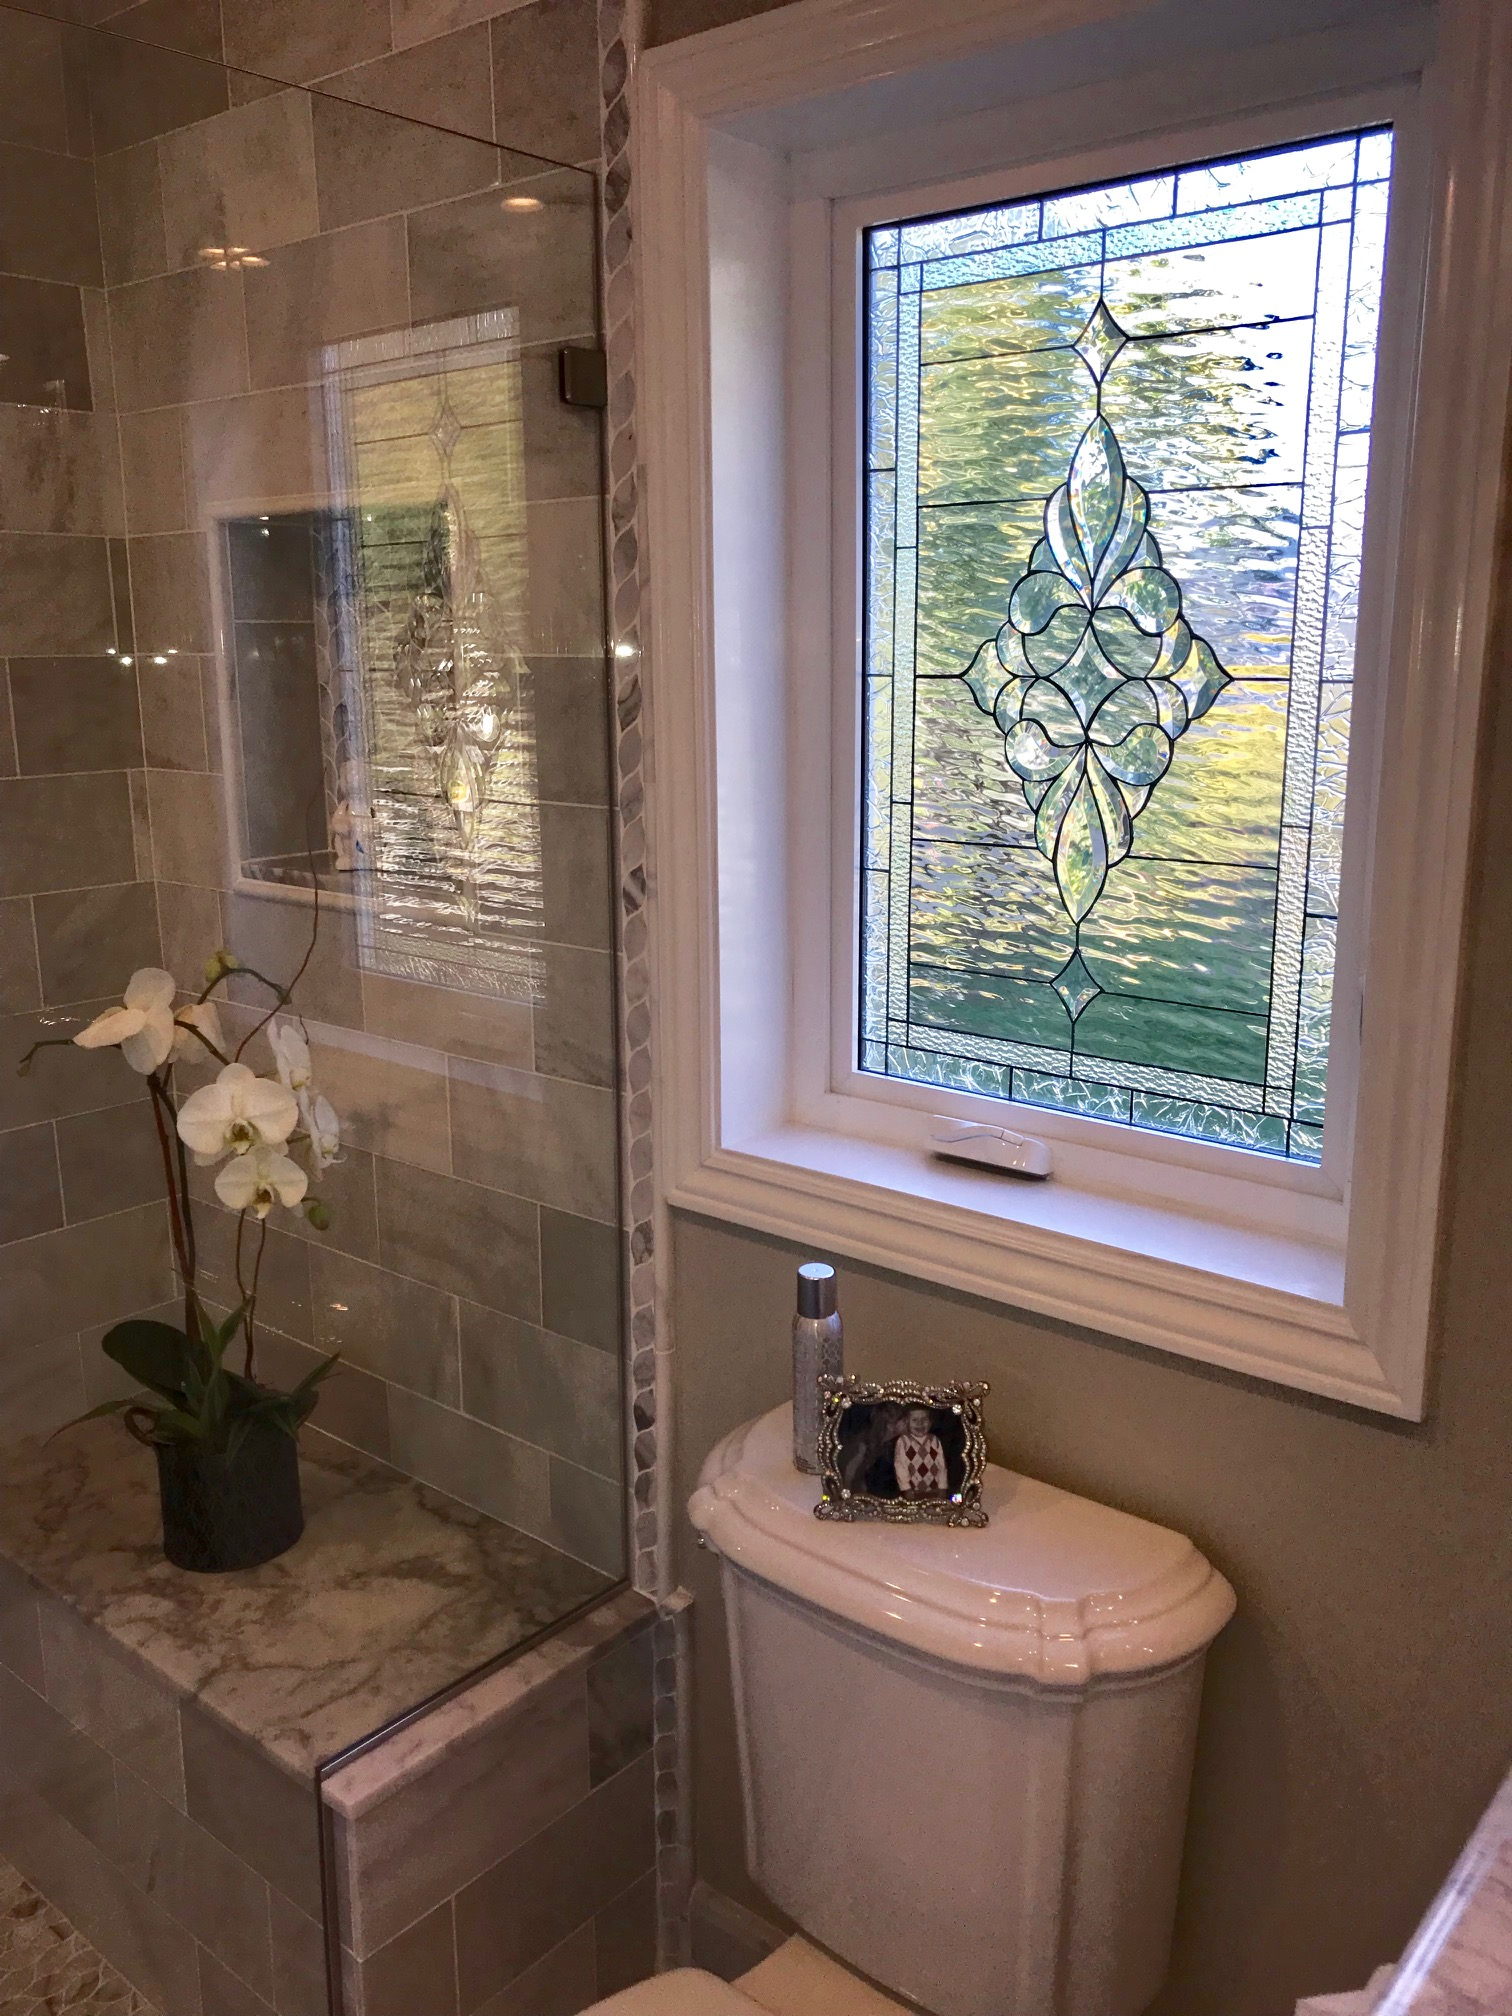 window privacy options bedroom stunning all clear beveled window installed in bathroom for privacy light and beauty jpg 1512x2016 bathroom window privacy options wwwtopsimagescom